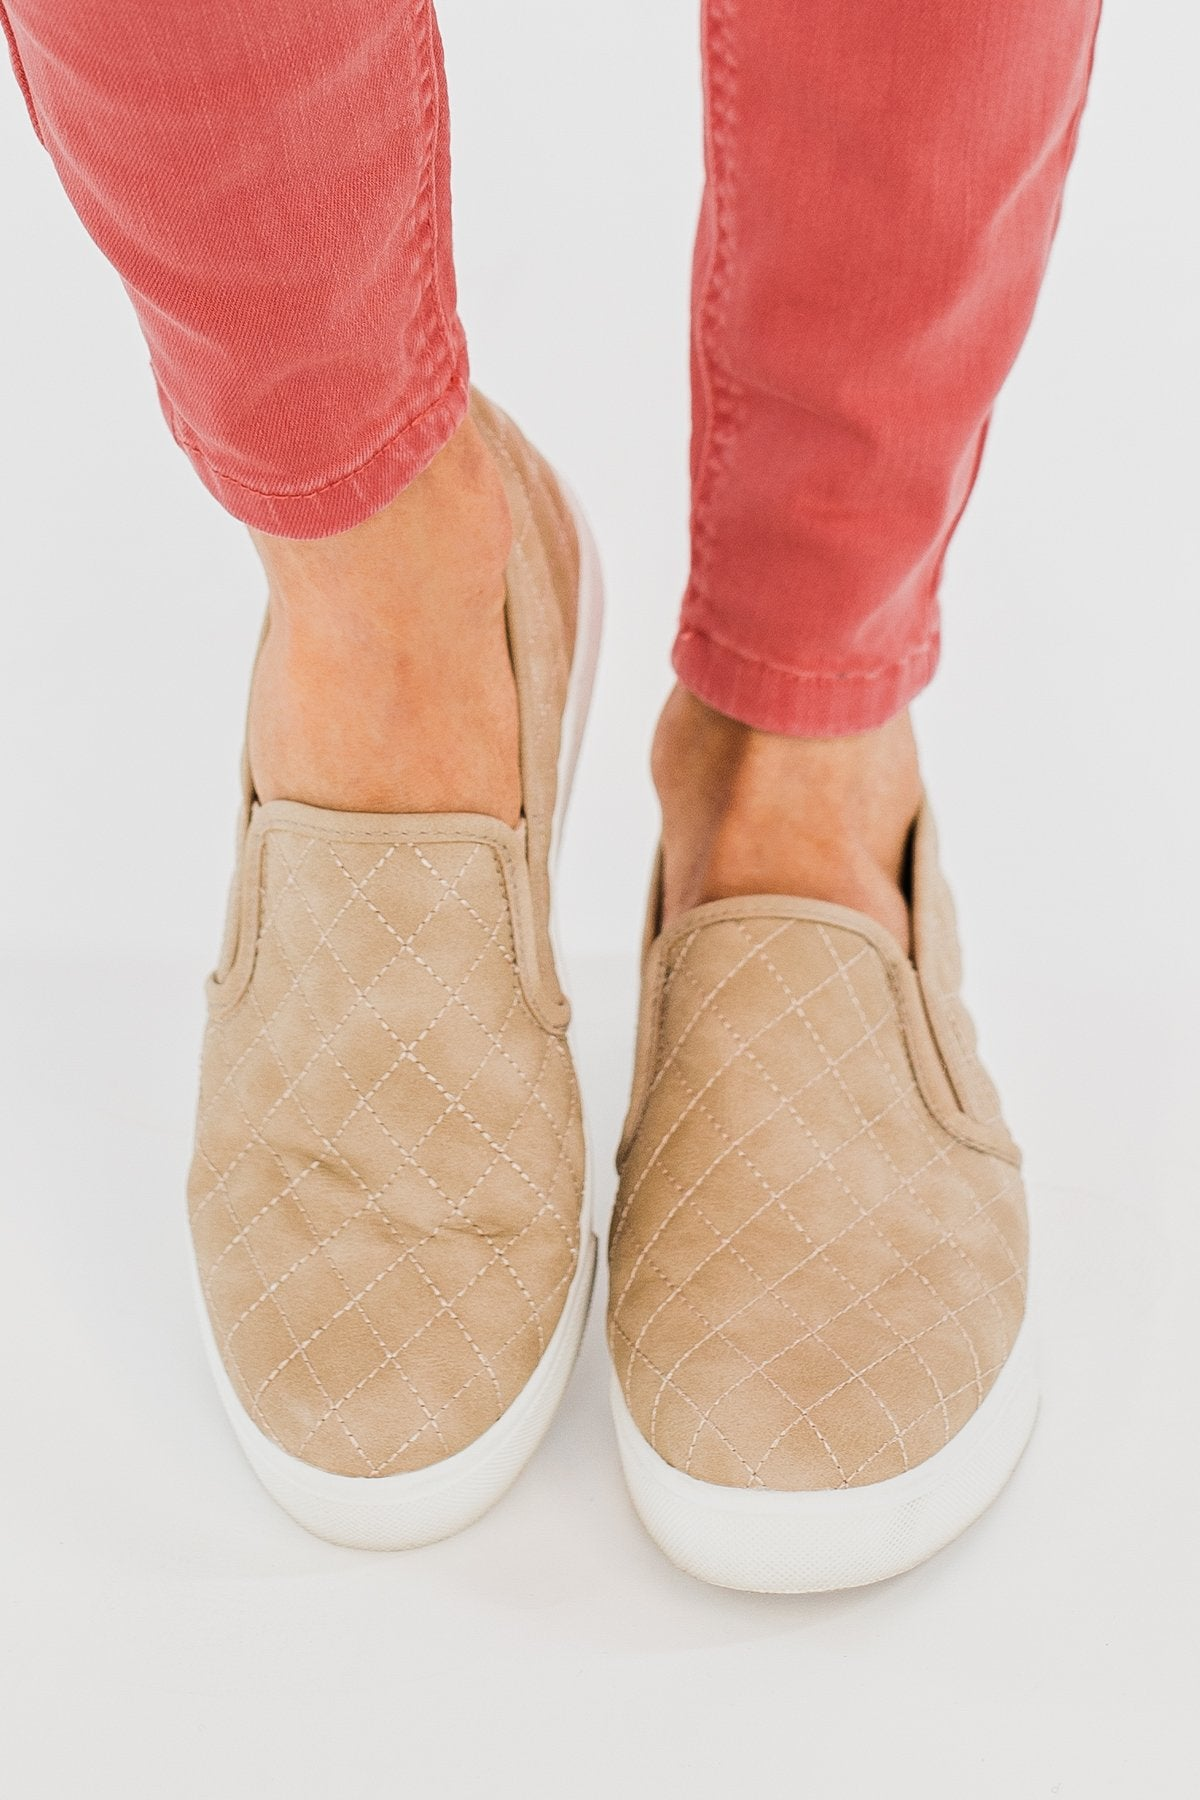 Soda Alone Slip On Sneakers- Taupe